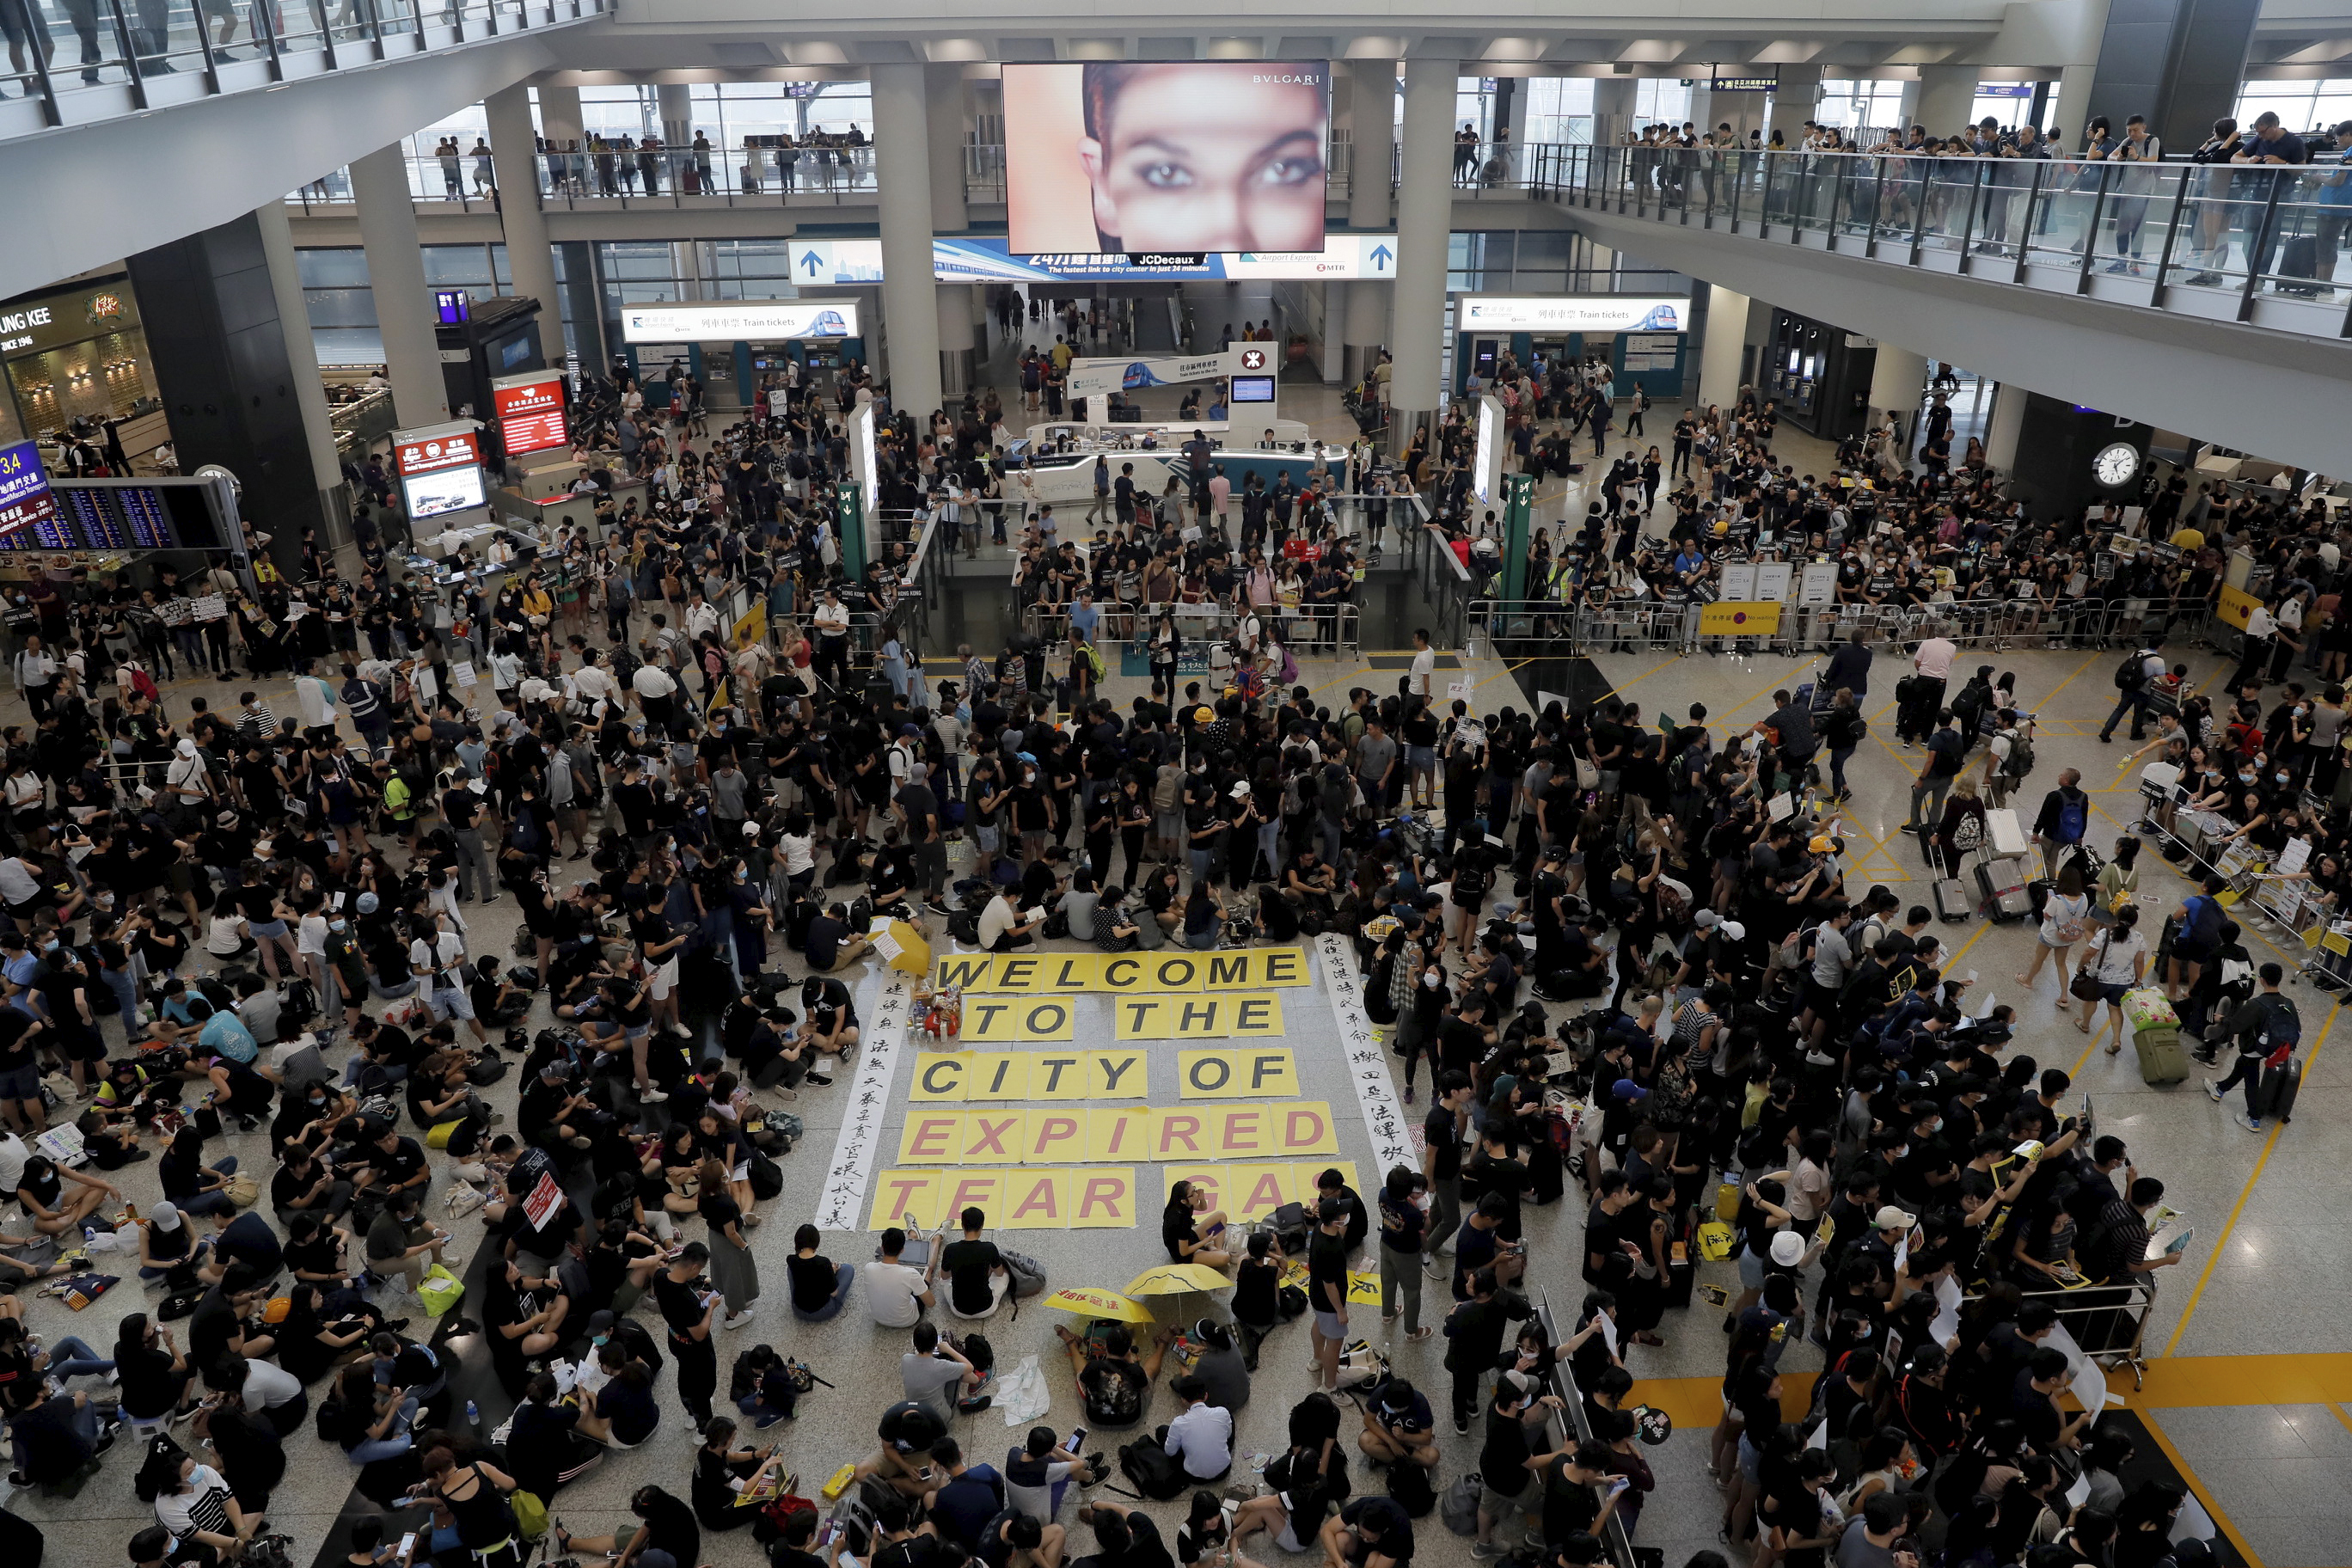 As protesters scatter, Hong Kong residents take their place